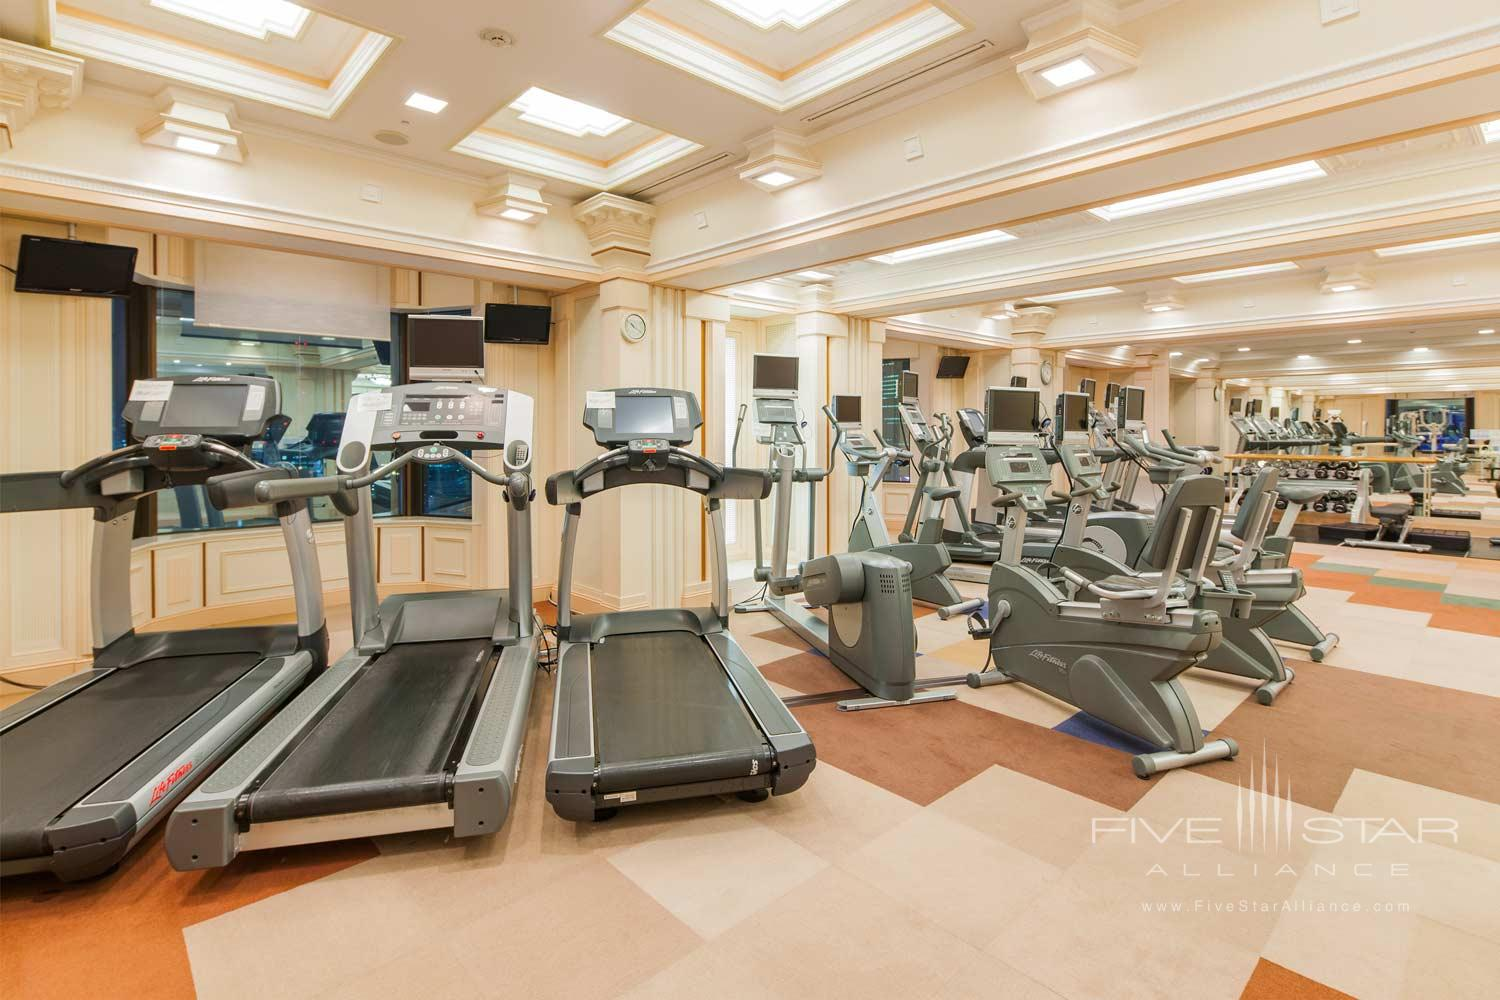 Fitness Center at Imperial Floors at the Imperial Tokyo, Japan